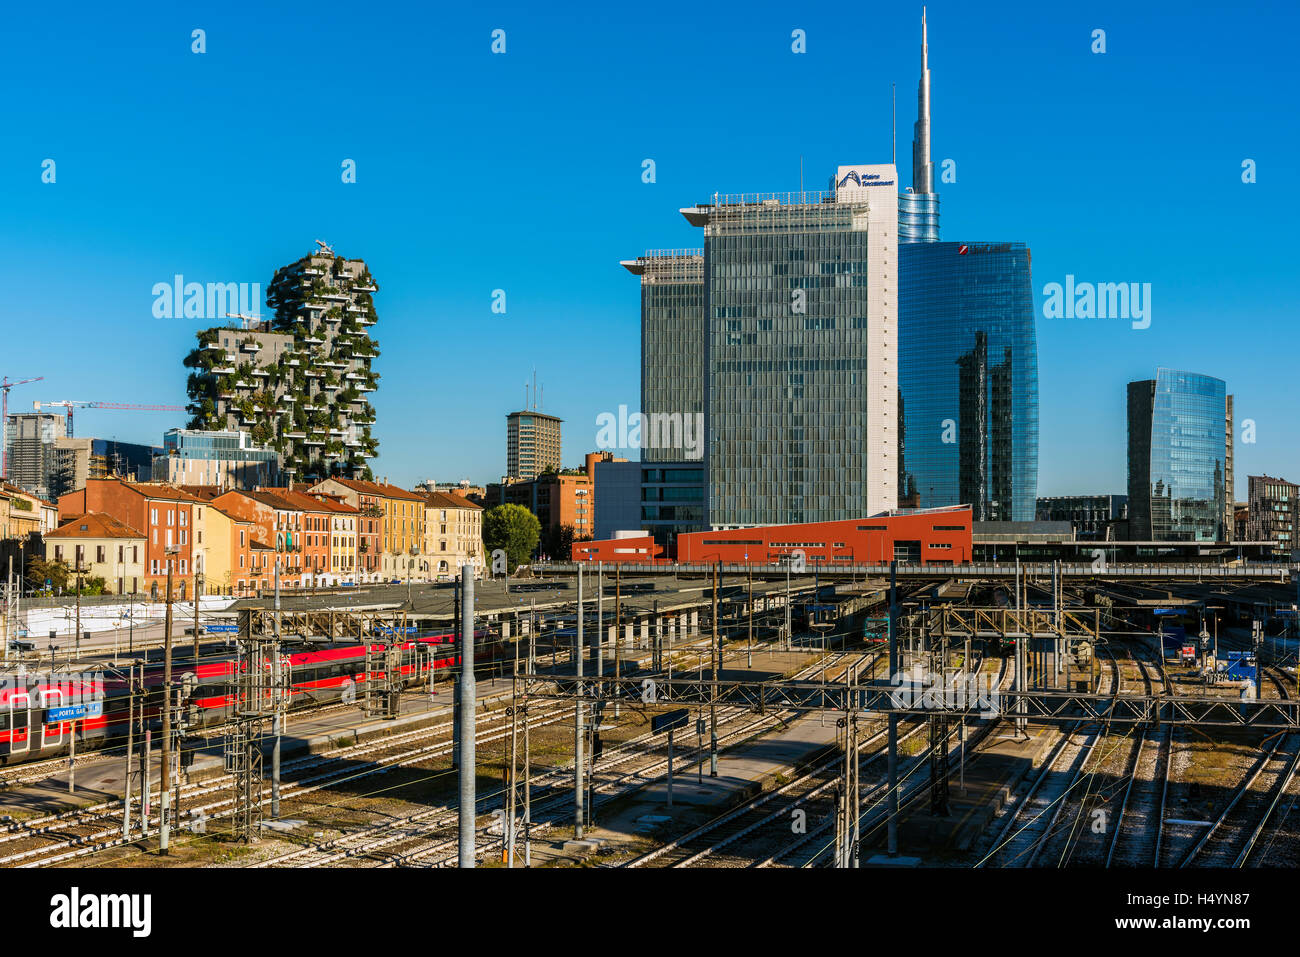 Garibaldi railway station and skyscrapers skyline, Milan, Lombardy, Italy - Stock Image